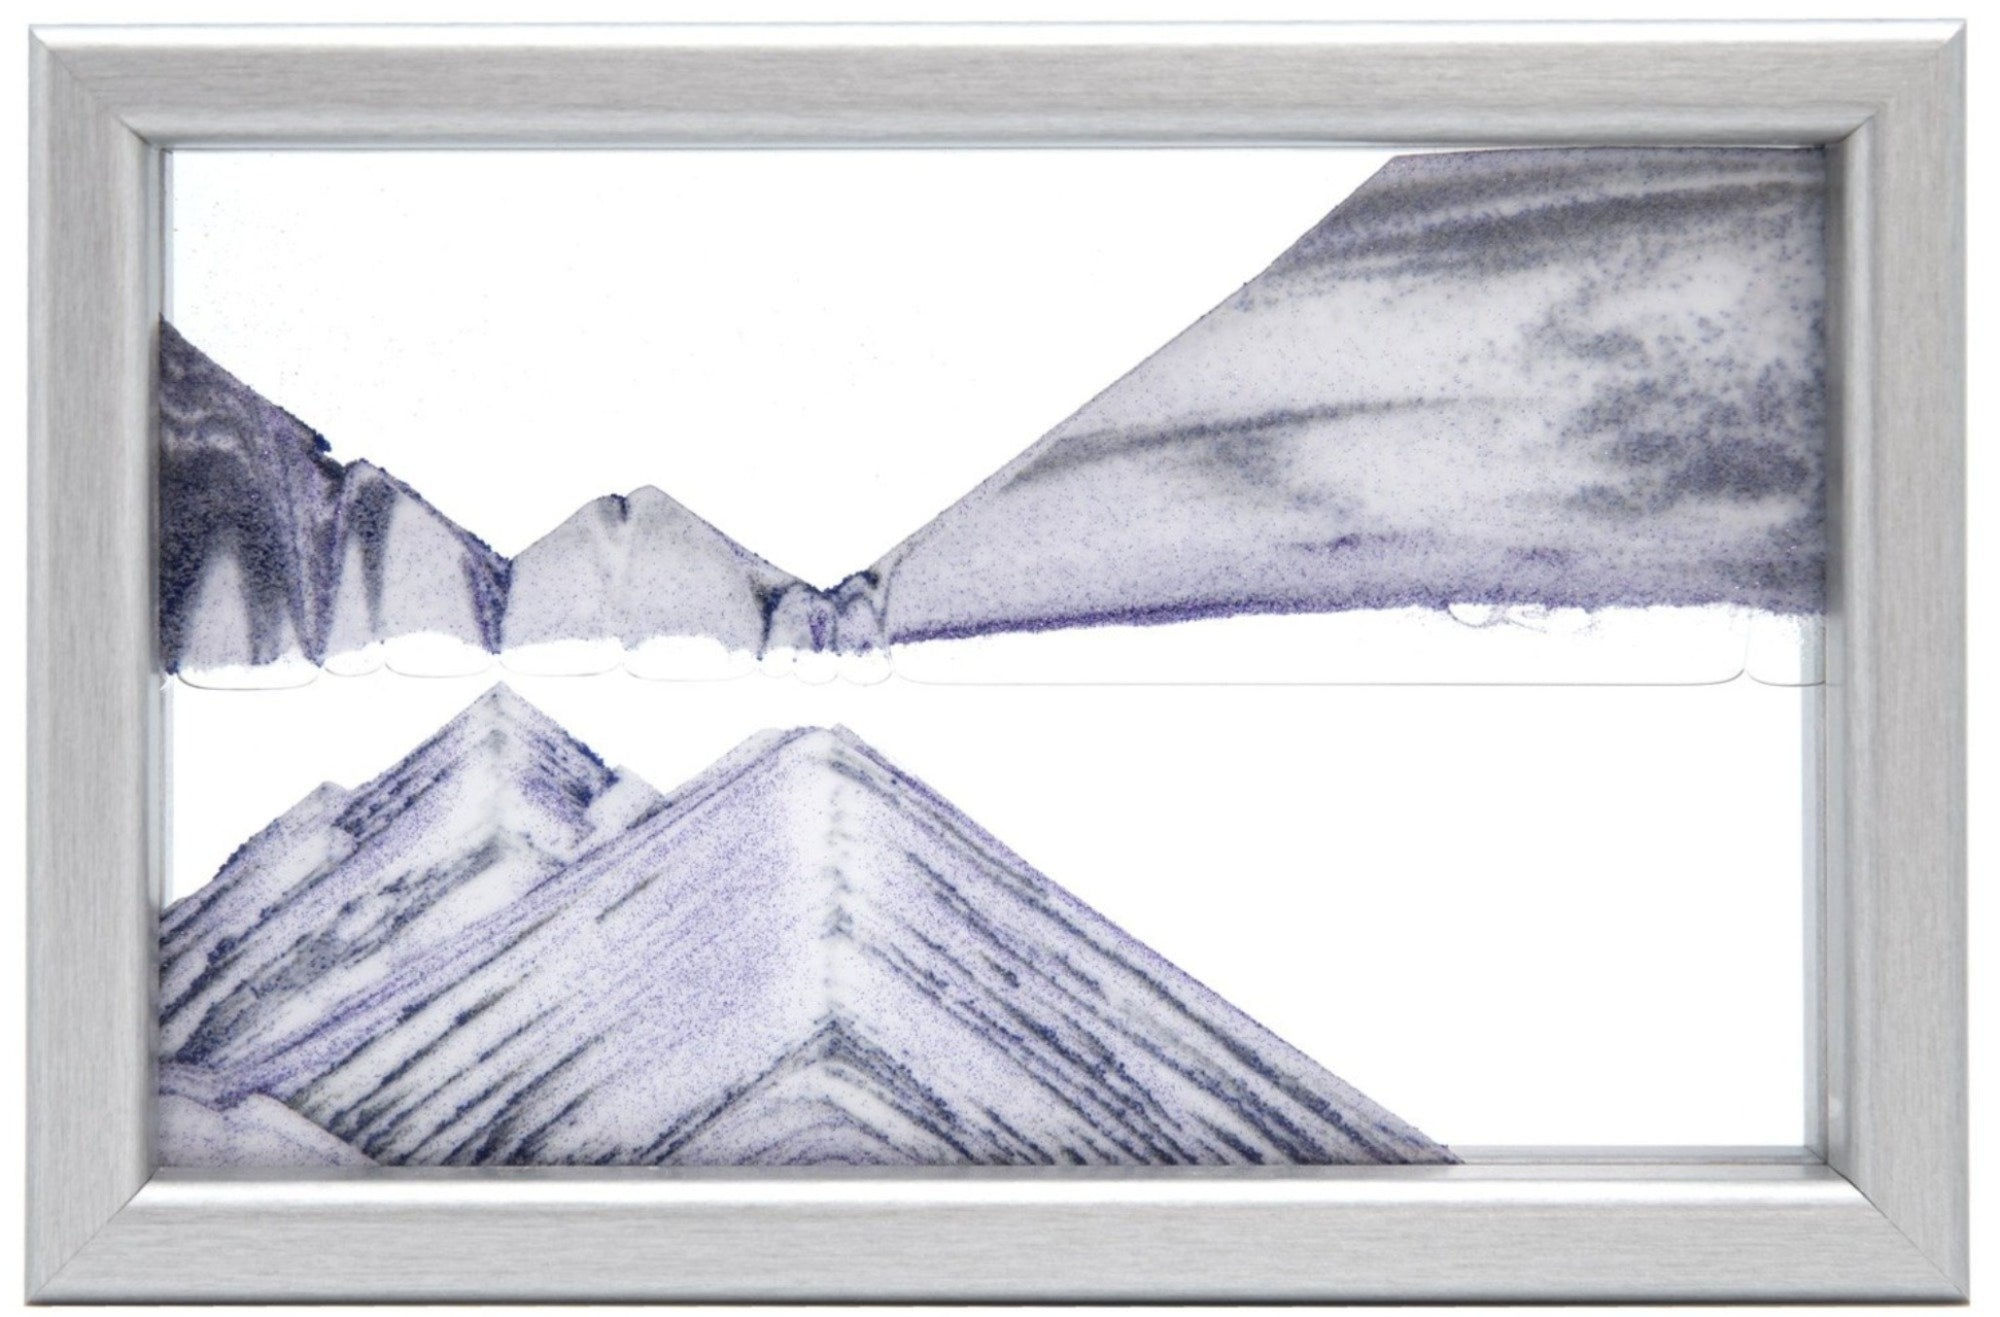 Picture of KB Collection Horizon Silver Sand Art- By Klaus Bosch sold by MovingSandArt.com